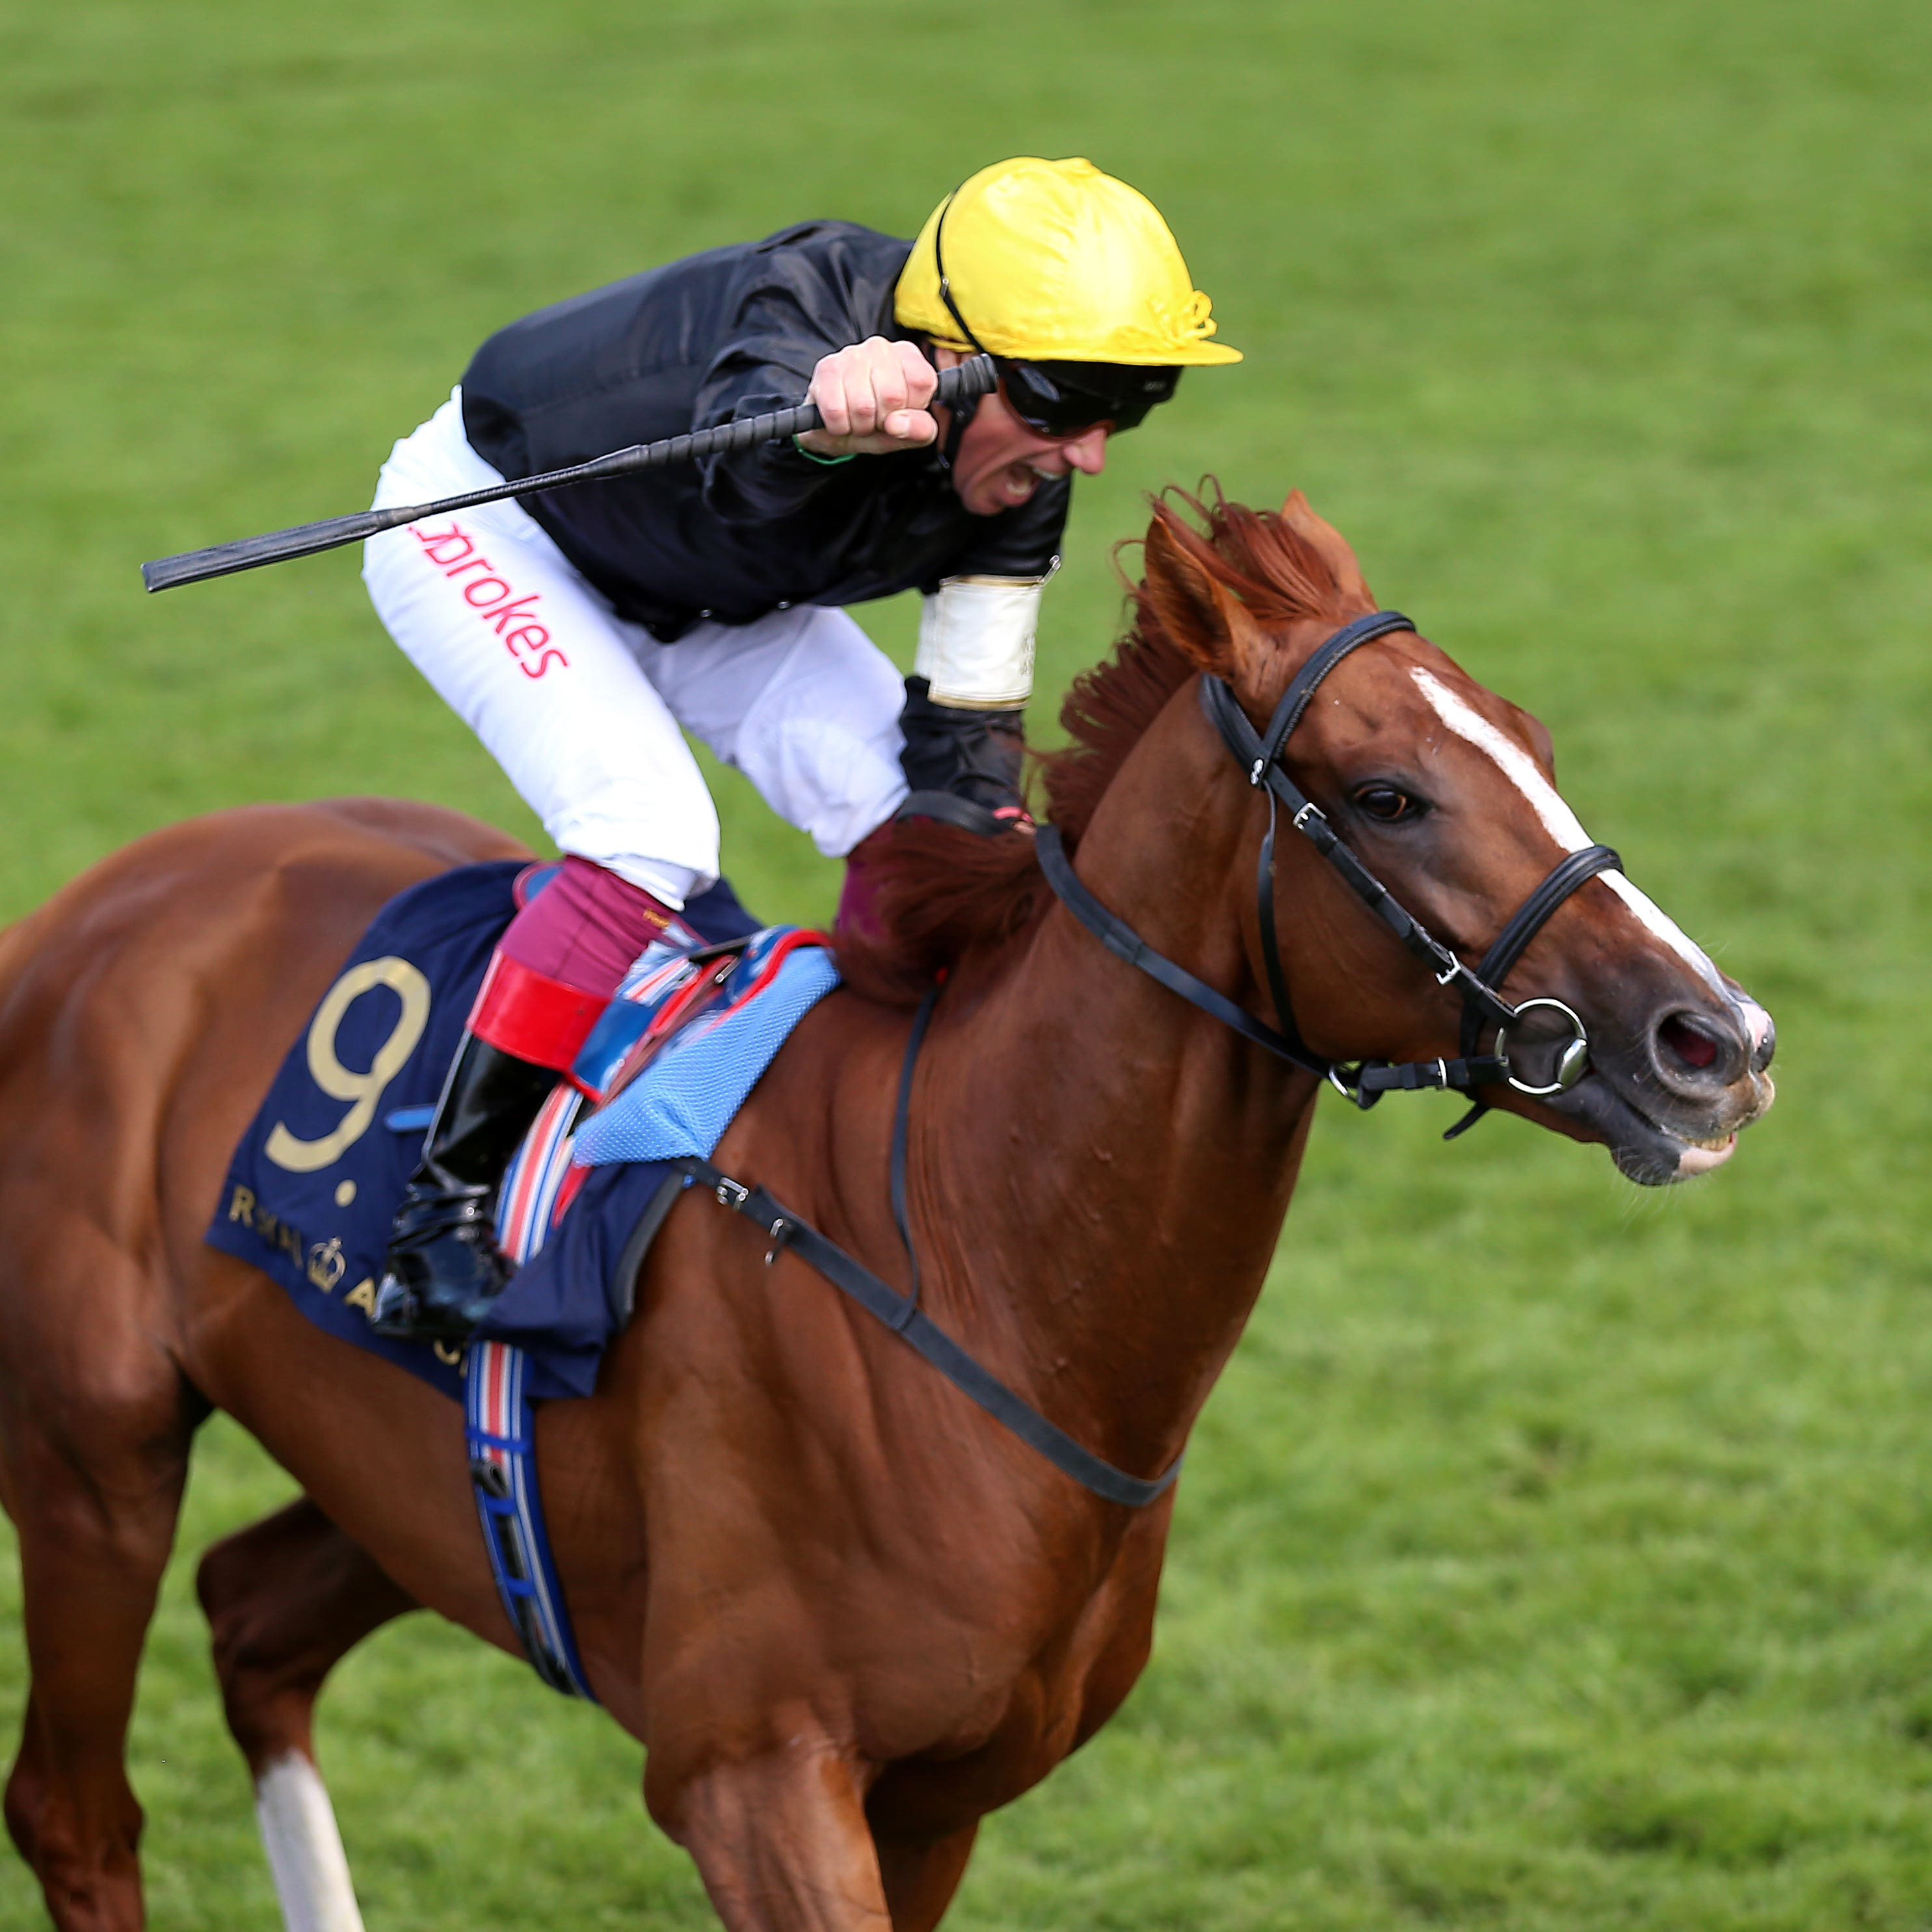 Frankie Dettori and Stradivarius win the Gold Cup